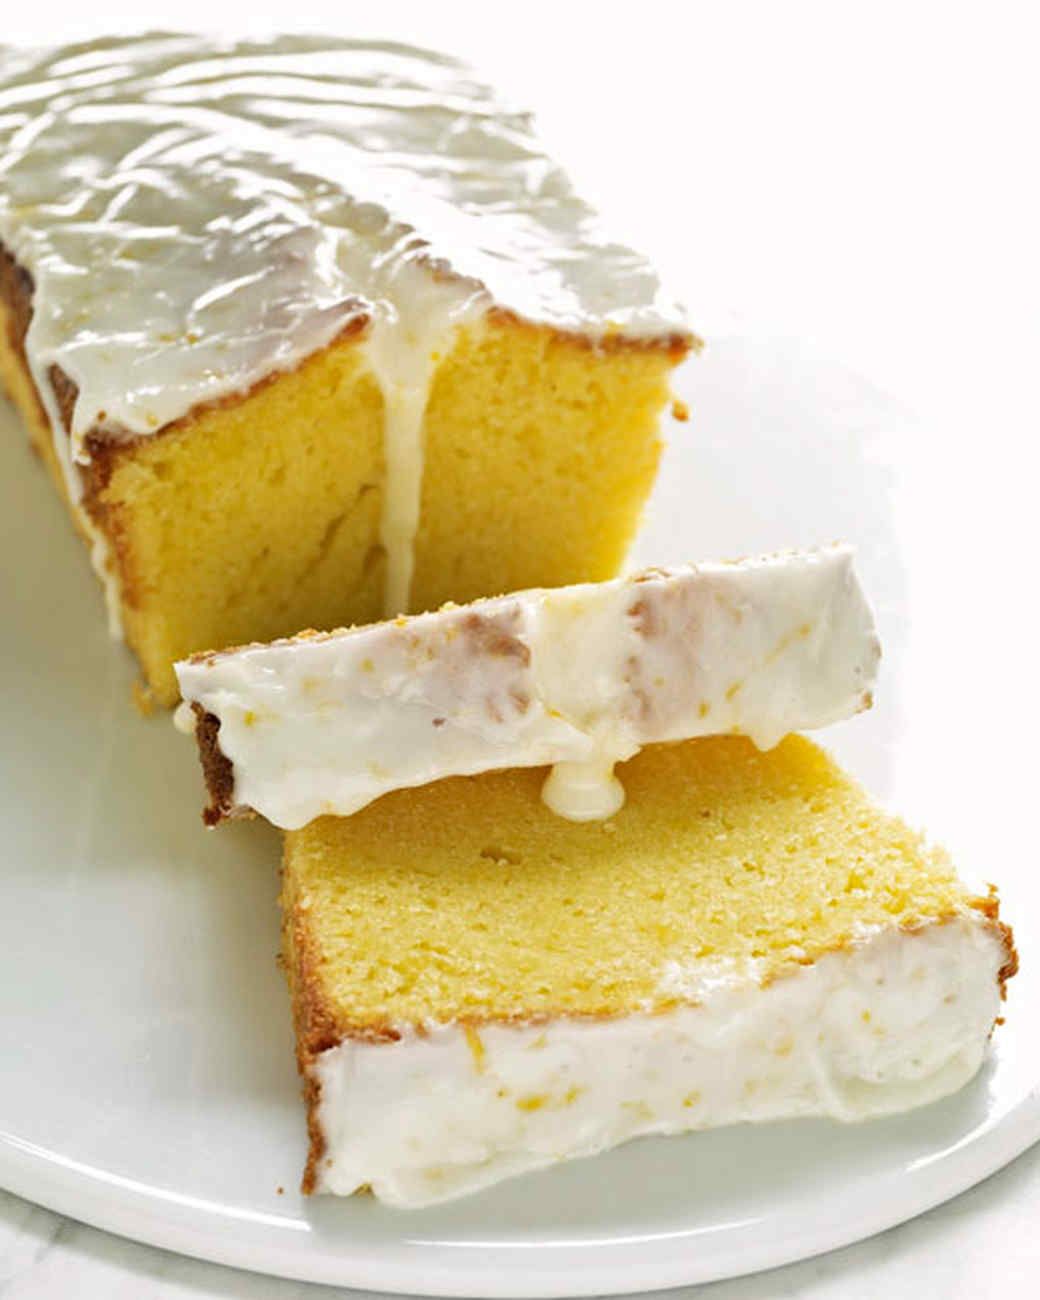 Homemade Lemon Pound Cake With Glaze Recipe